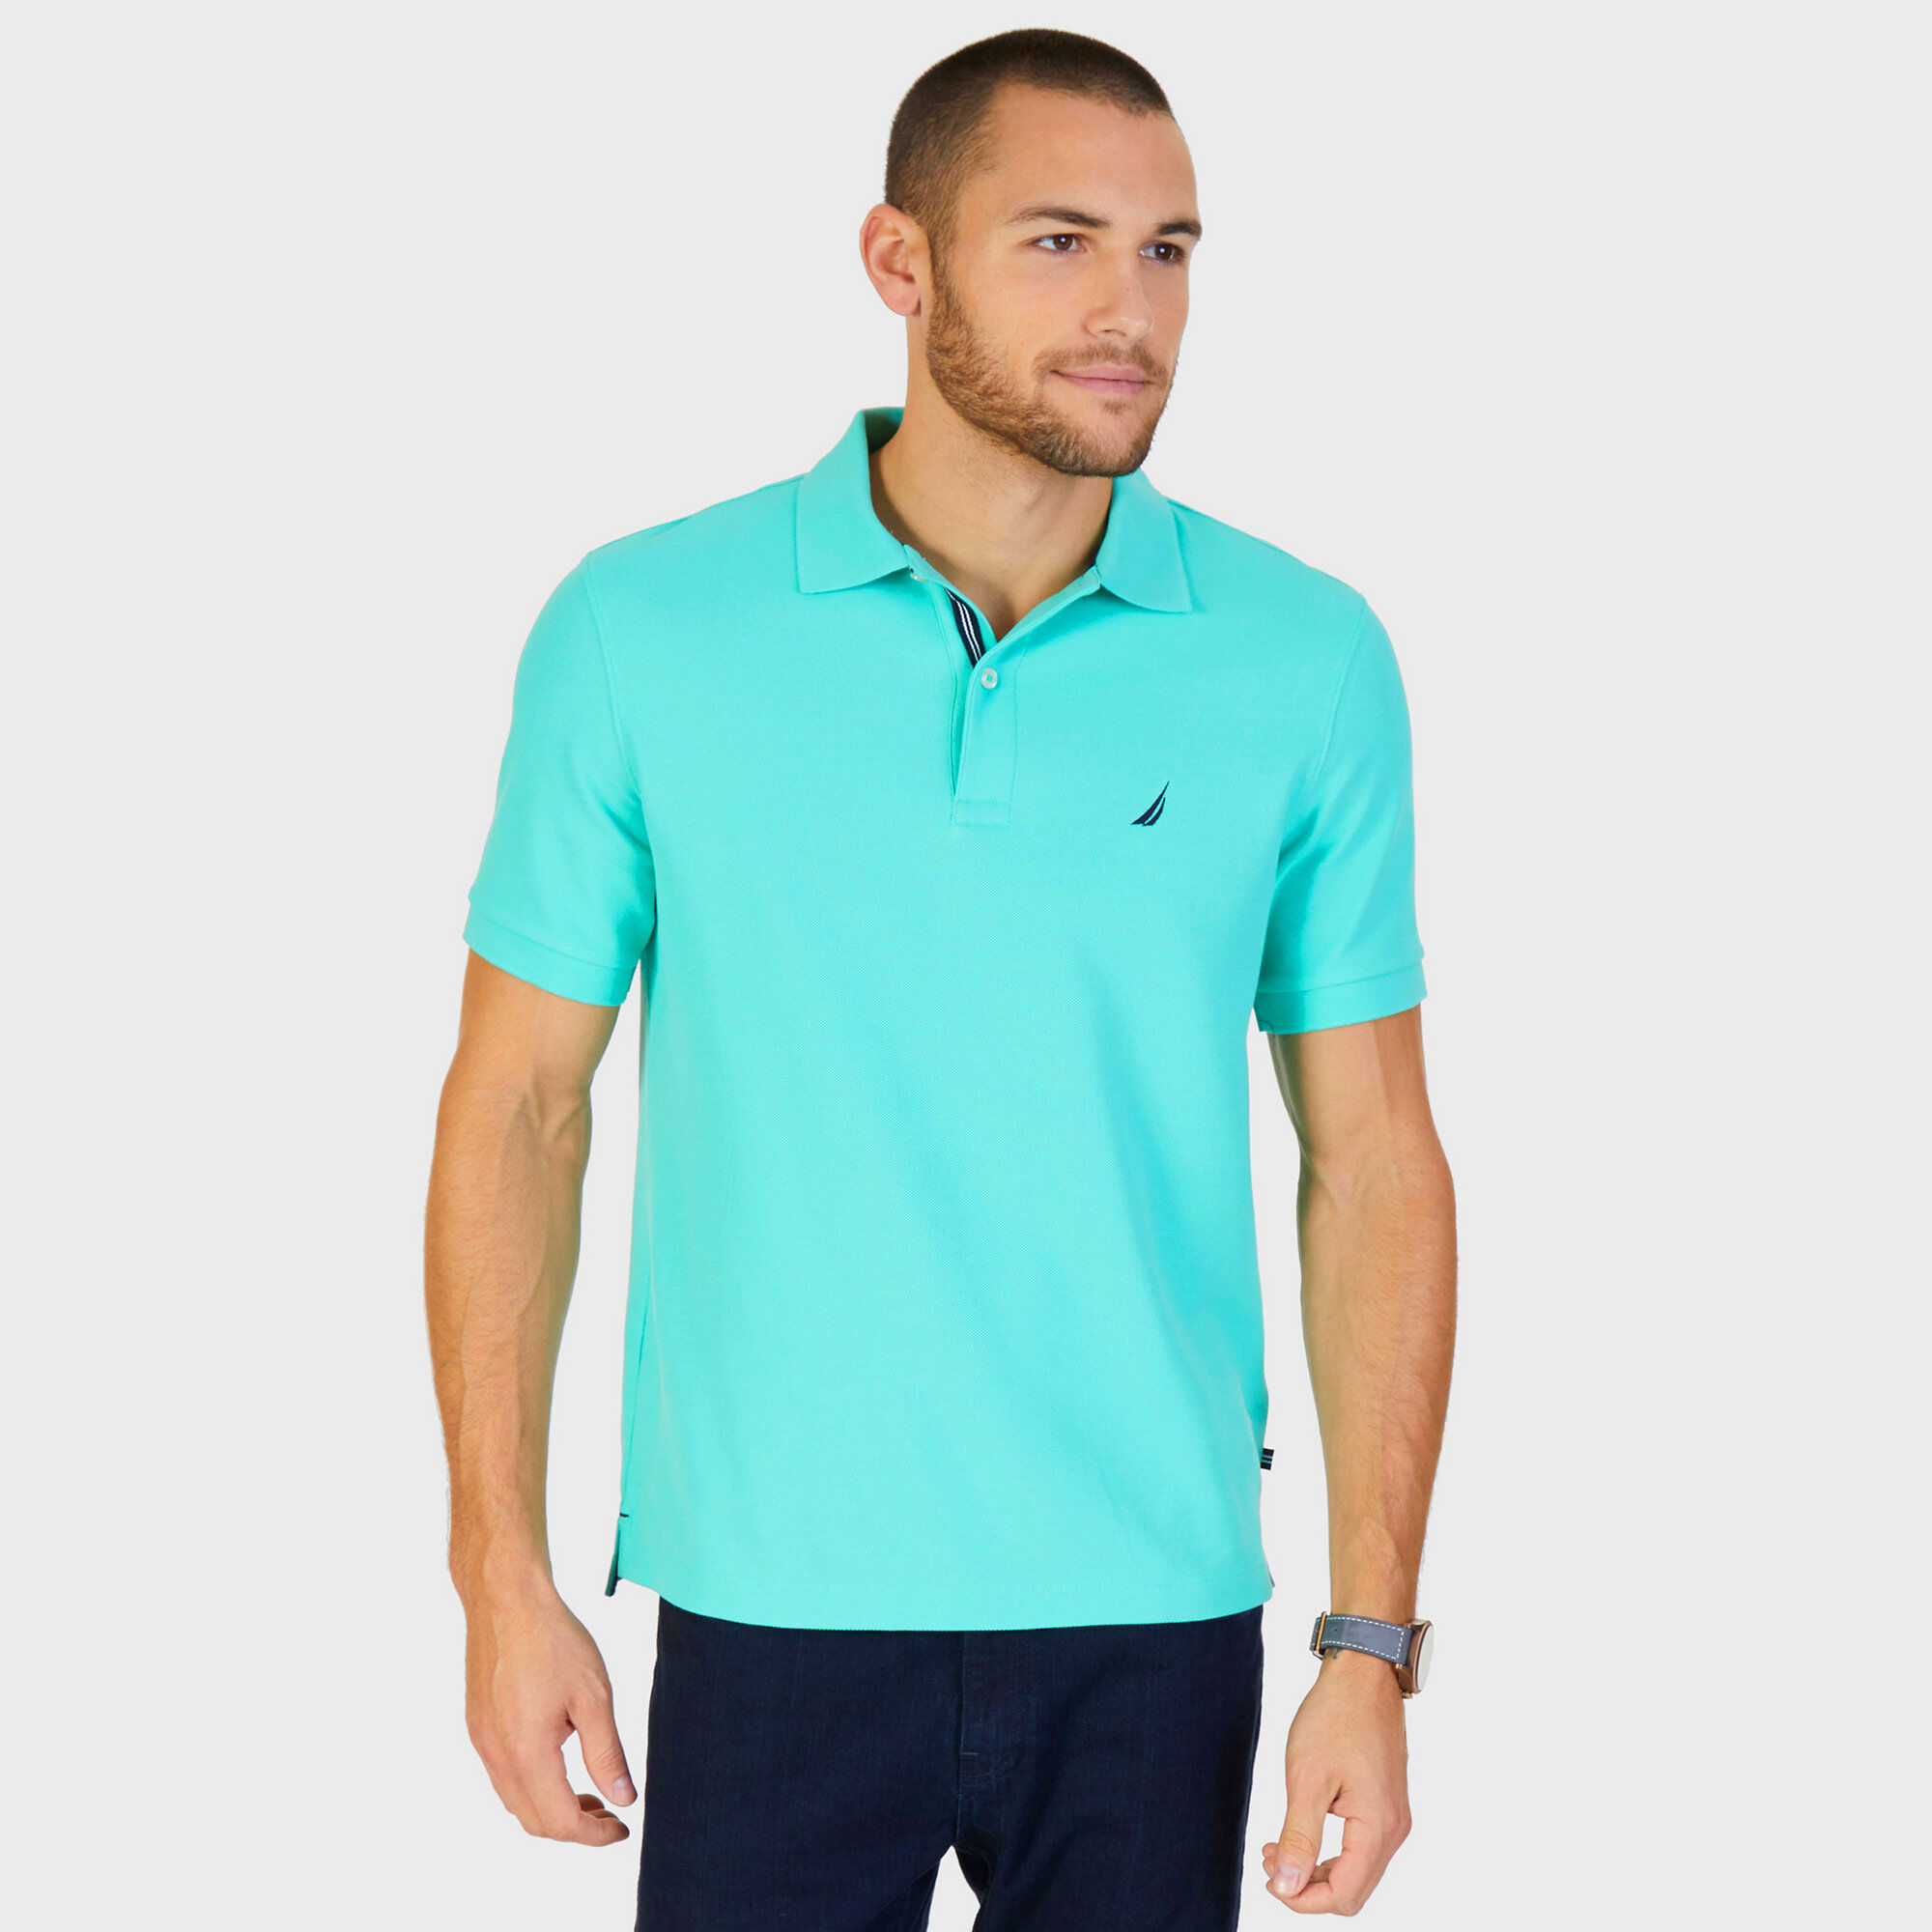 d6c52239 Nautica Mens Big & Tall Short Sleeve Classic Fit Stretch Deck Polo ...